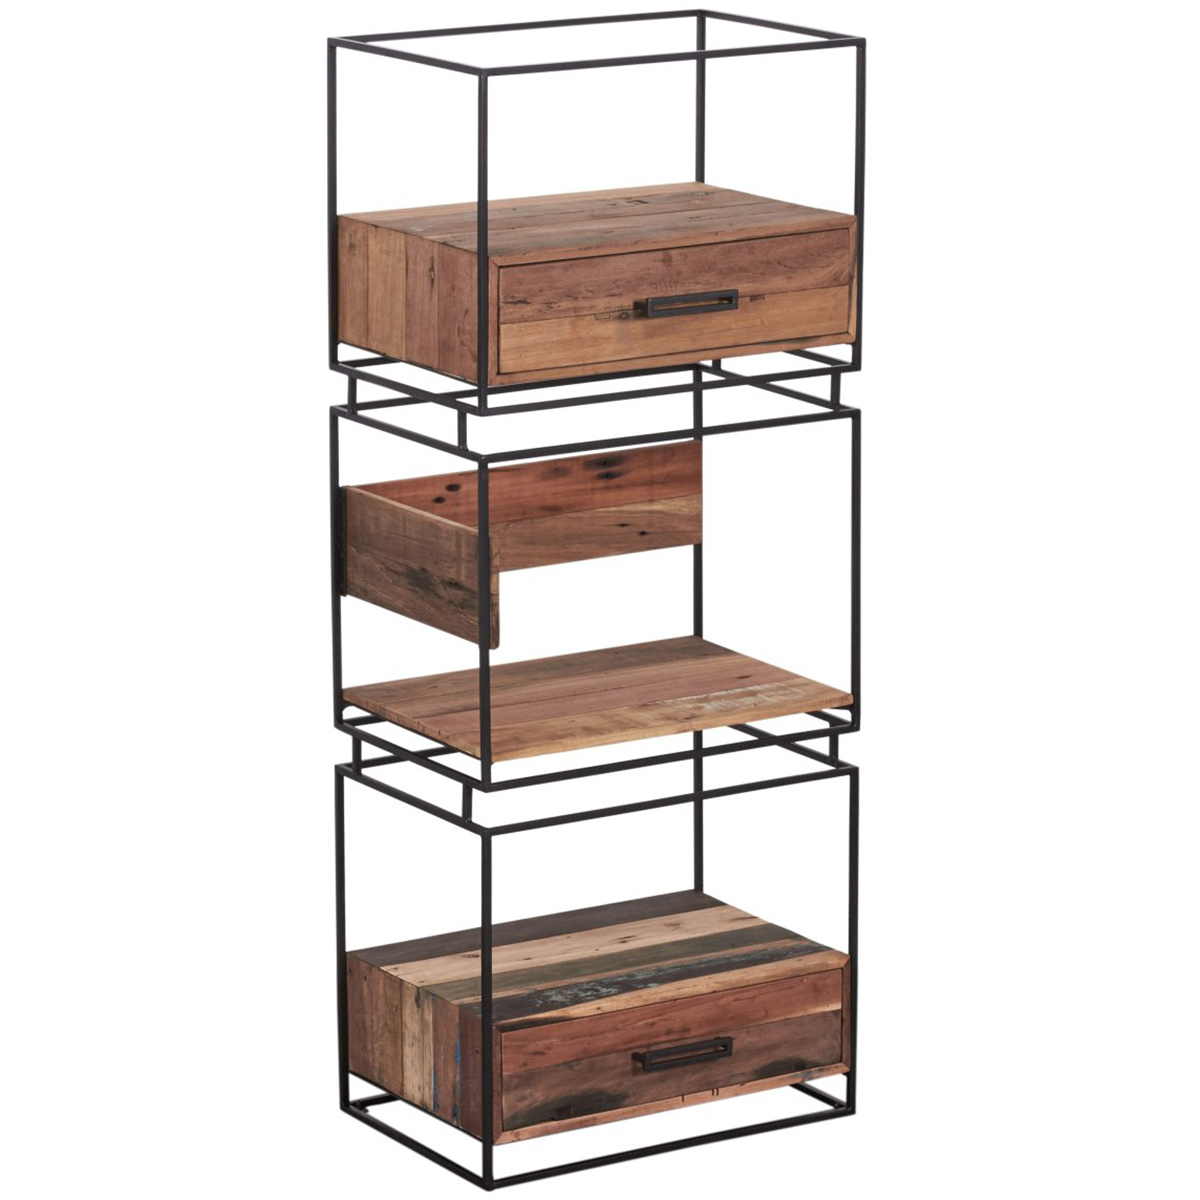 Nako Reclaimed Wood Bookcase With Storage